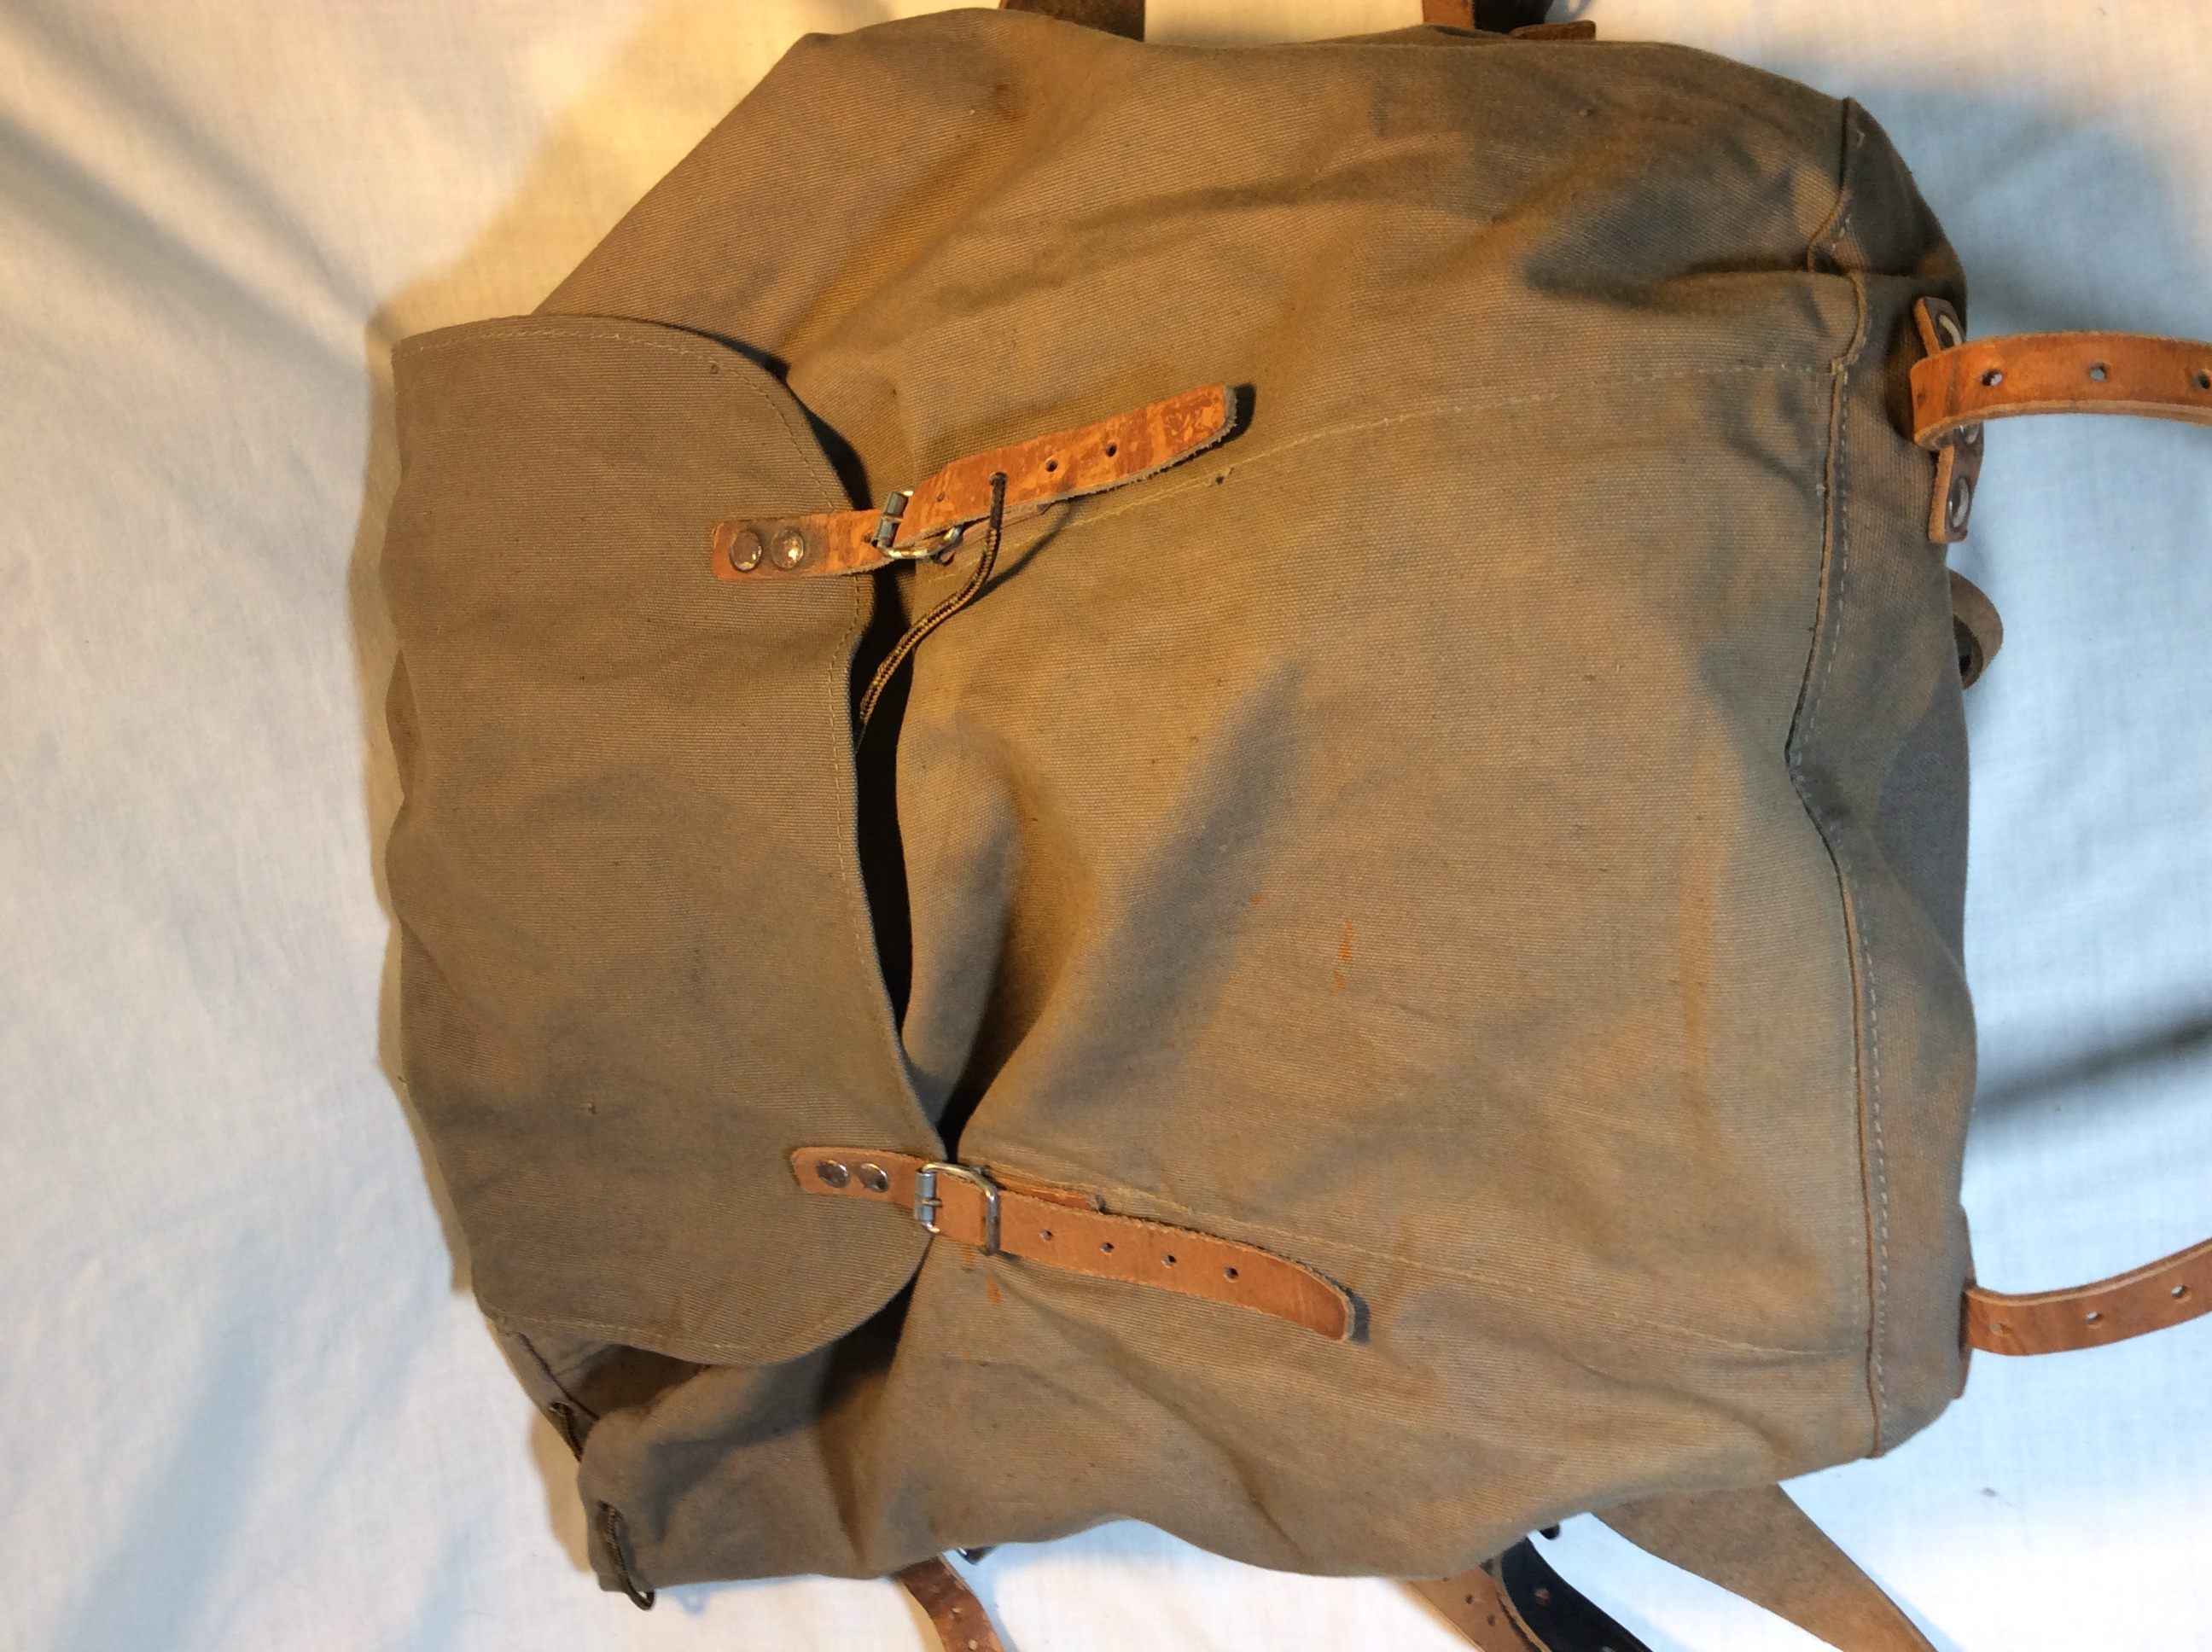 Olive green backpack with leather